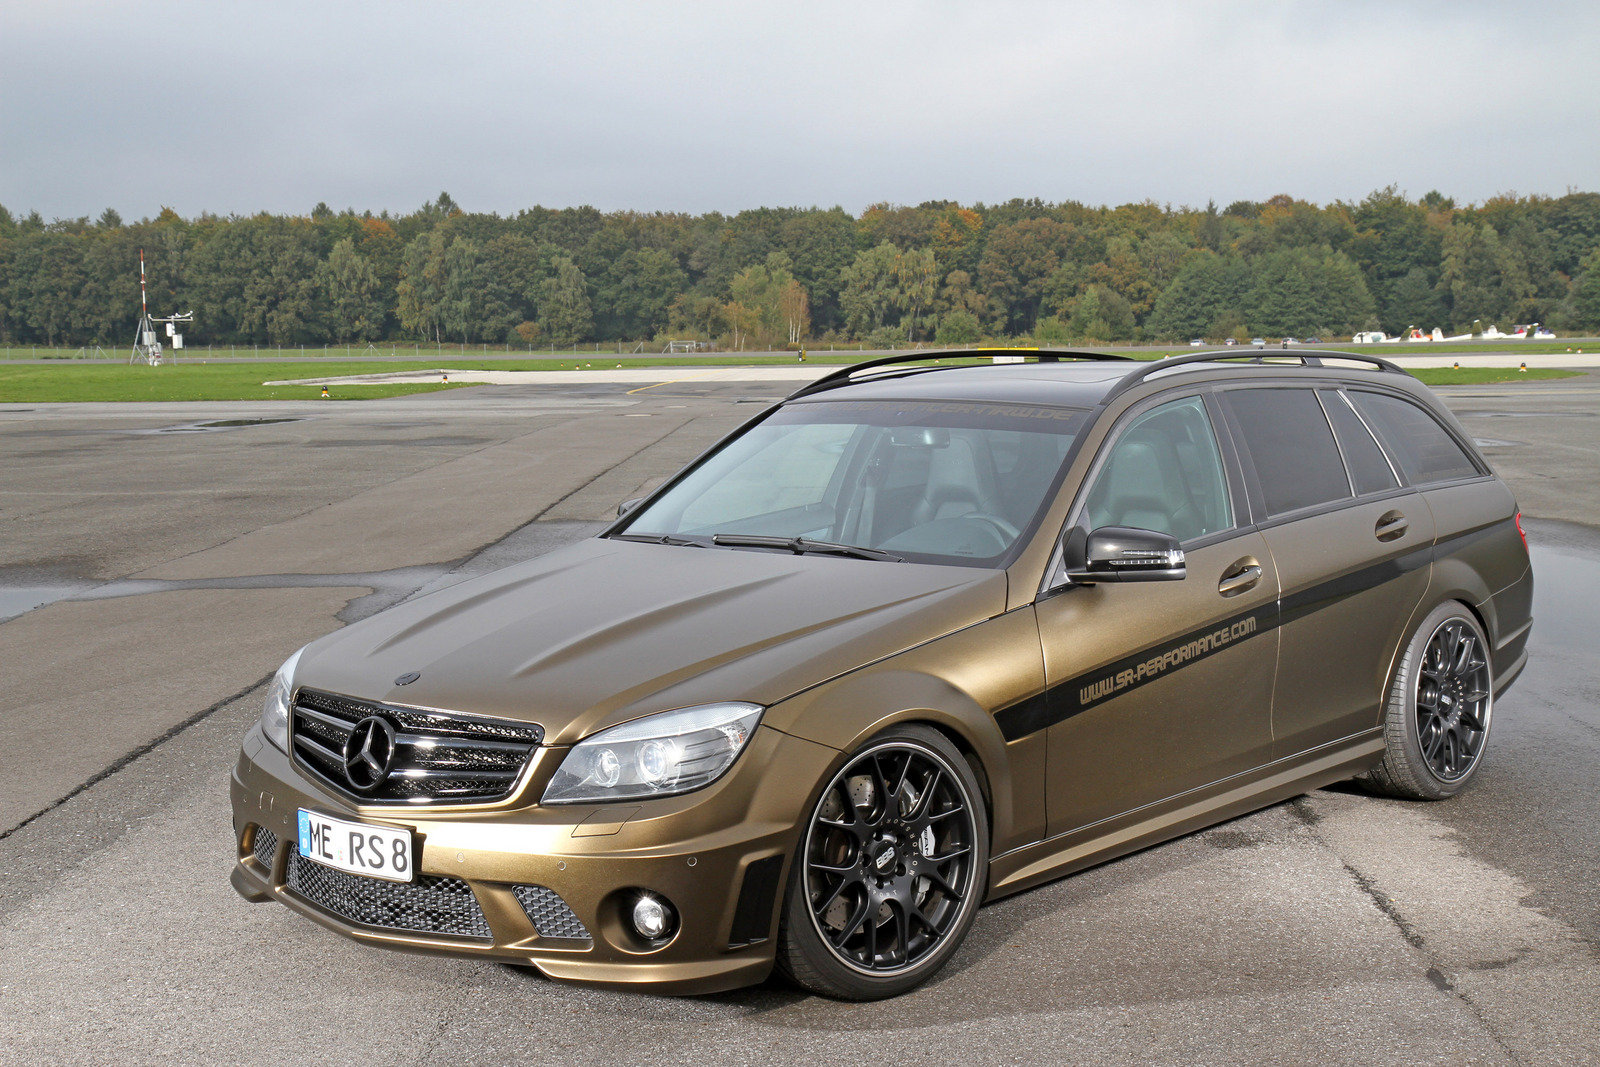 2013 Mercedes Benz C63 Amg By Foliencenter Nrw Picture